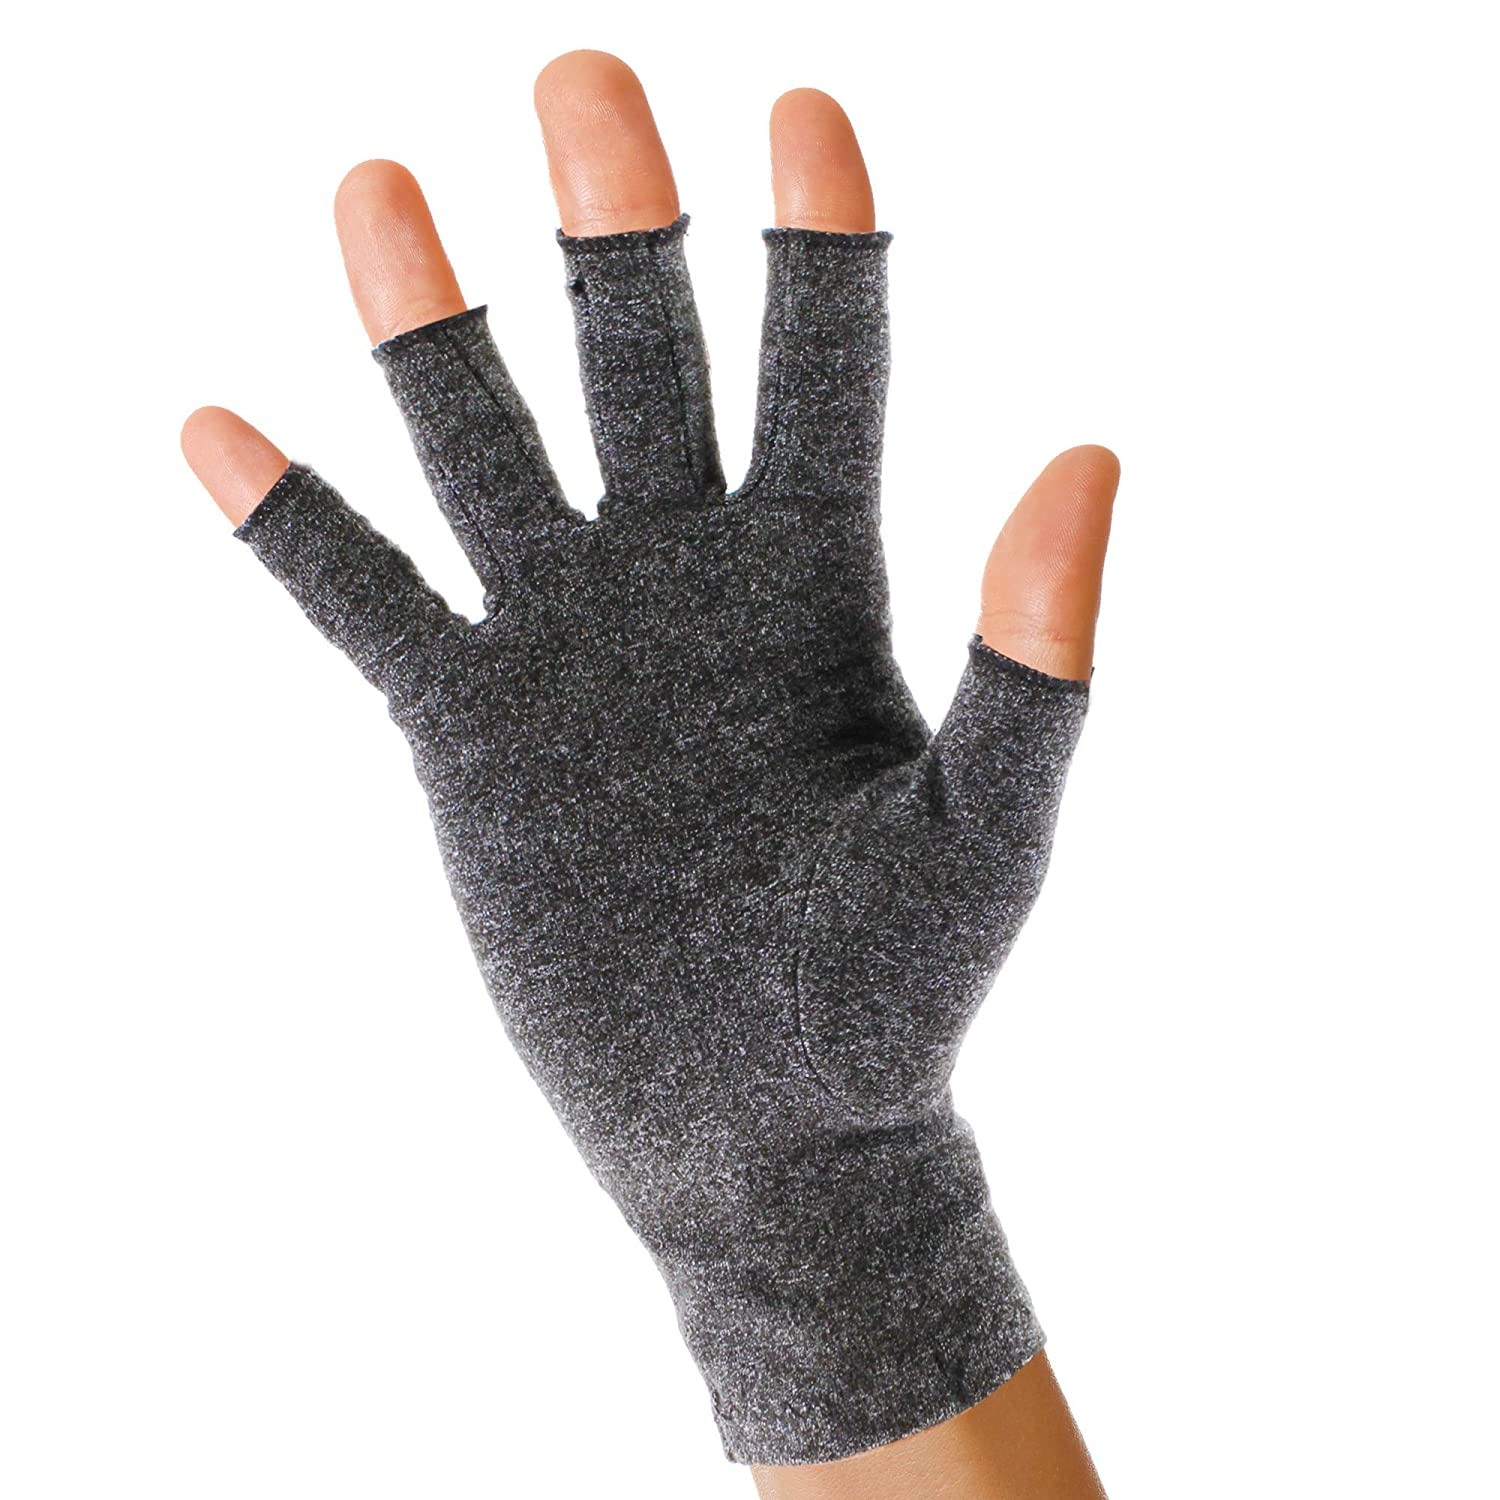 Pivit Arthritis Gloves   Compression Glove for Rheumatoid, Osteoarthritis   Heat Hand Gloves for Computer Typing, Arthritic Joint Pain Relief, Carpal Tunnel   Men, Women   Open Finger Thumb (Large)